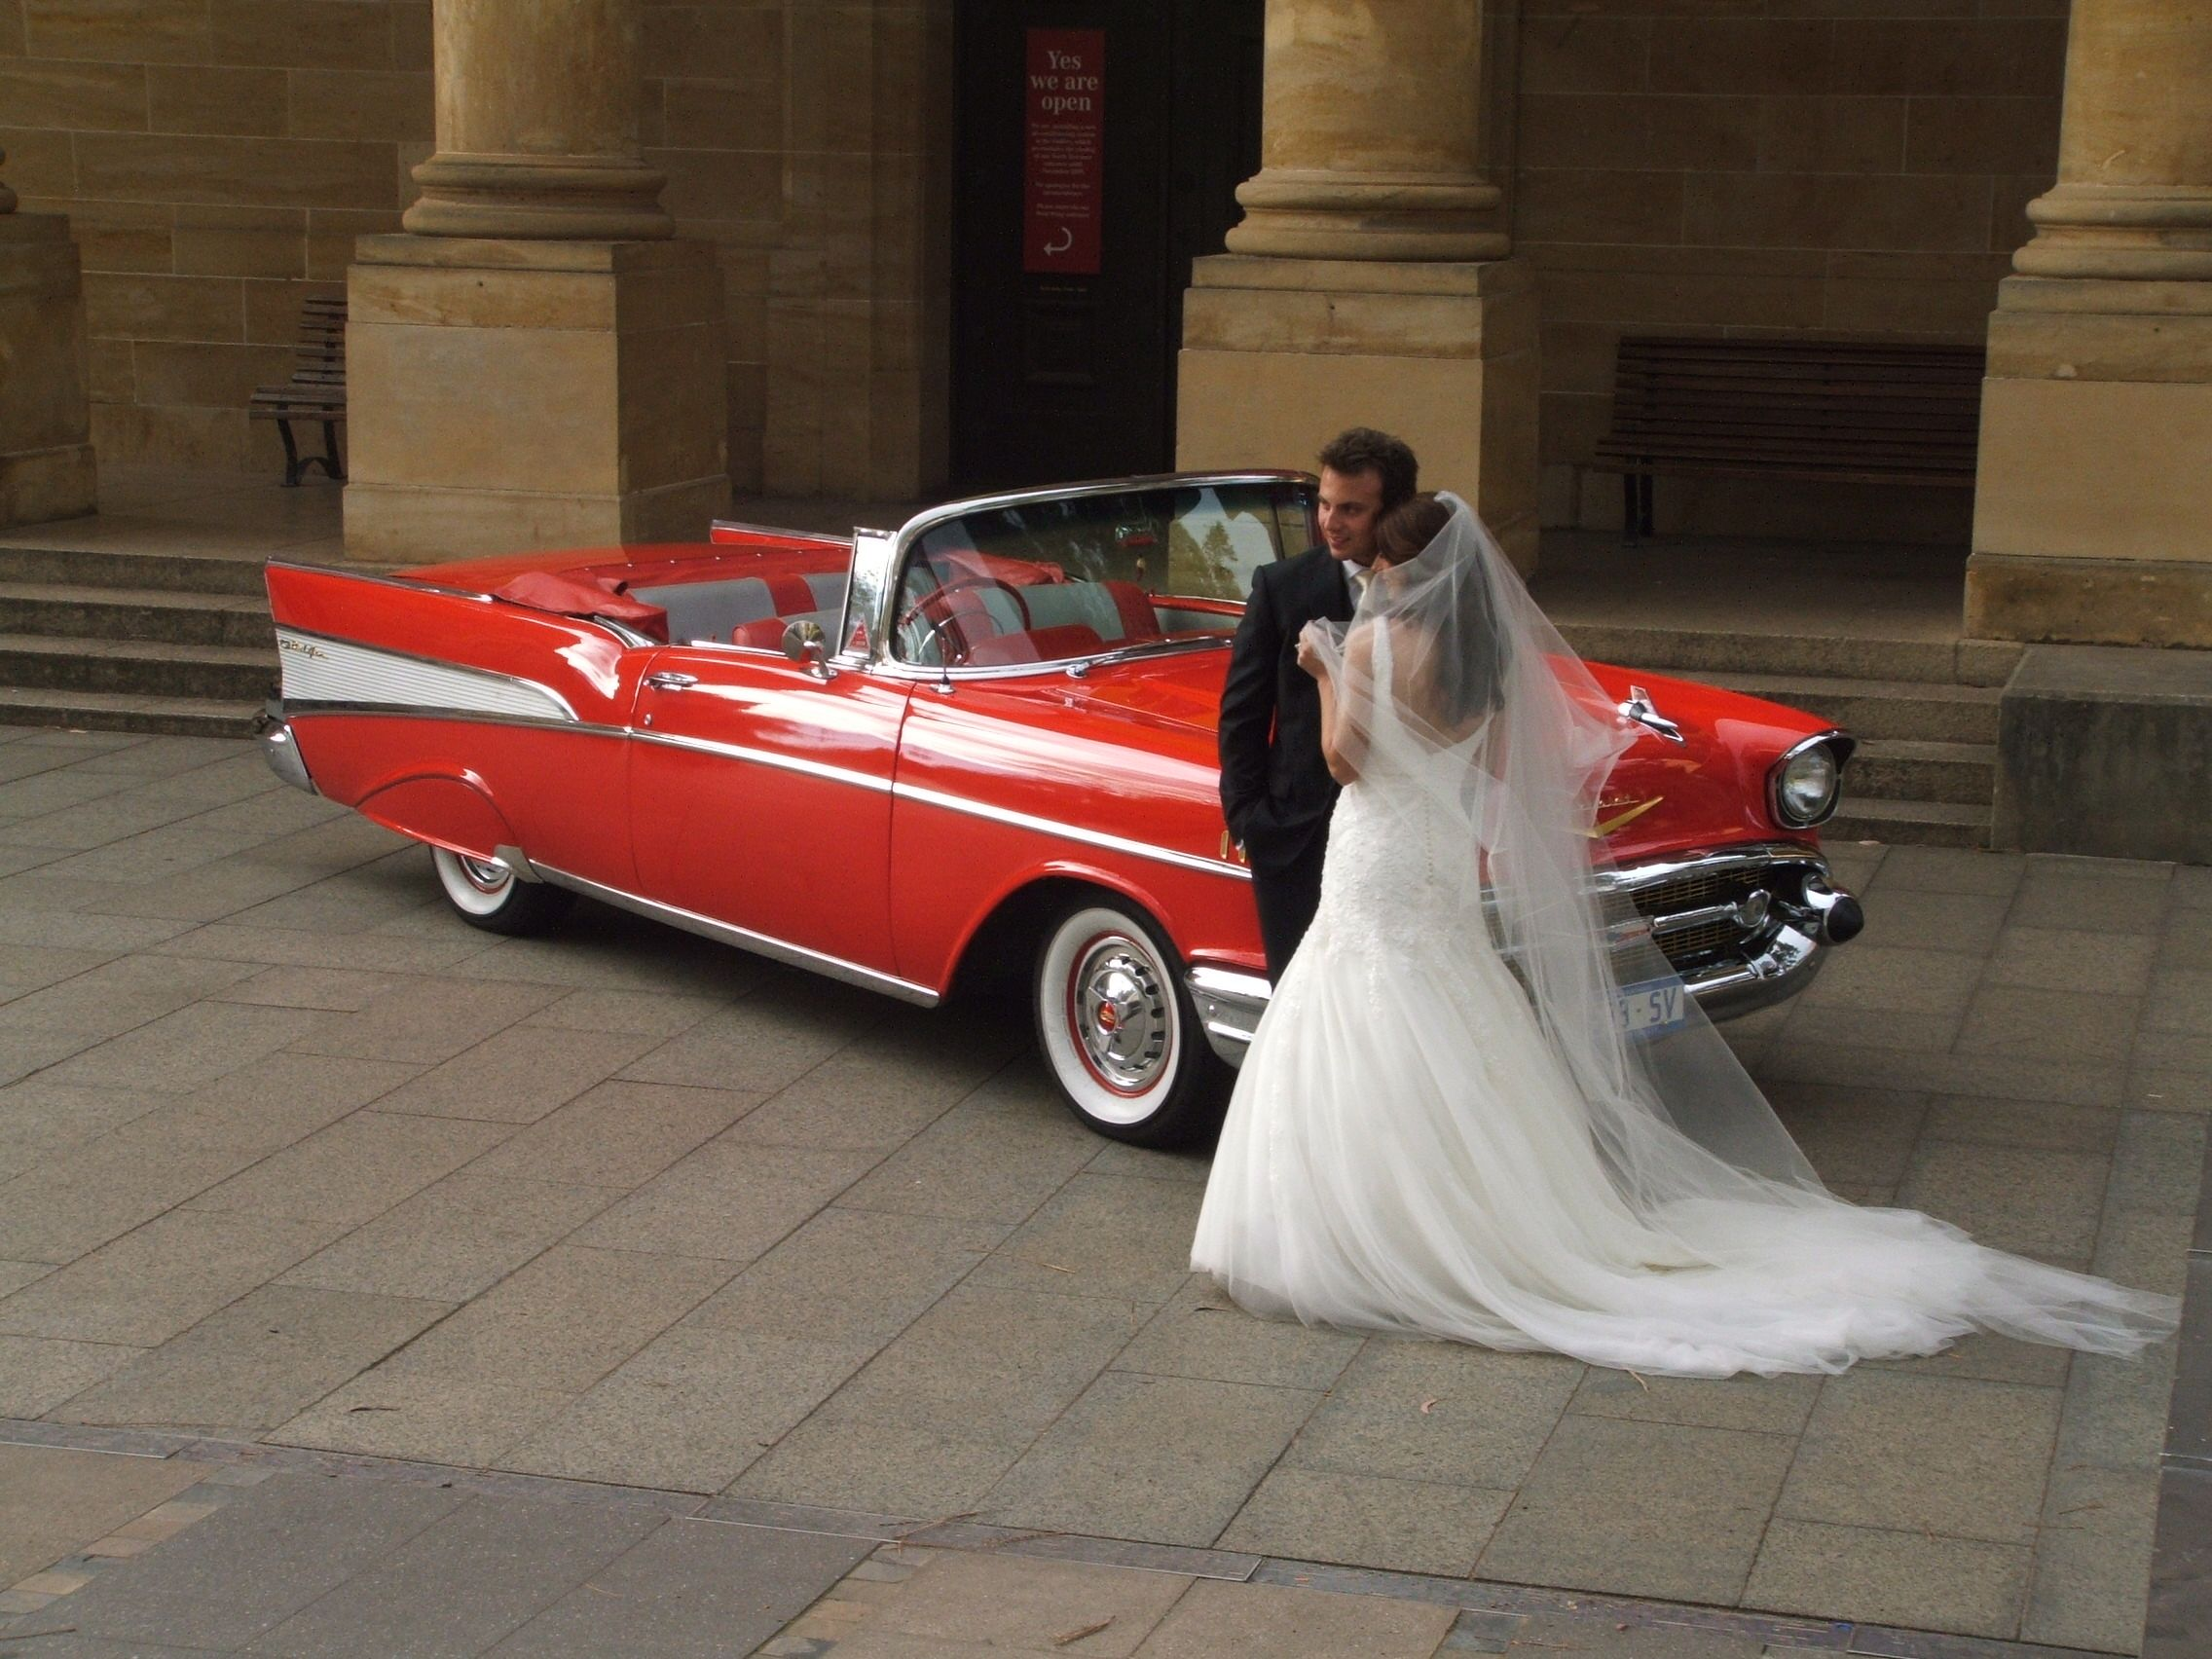 Adelaide Chevy Hire wow! imagine this car on your wedding day.